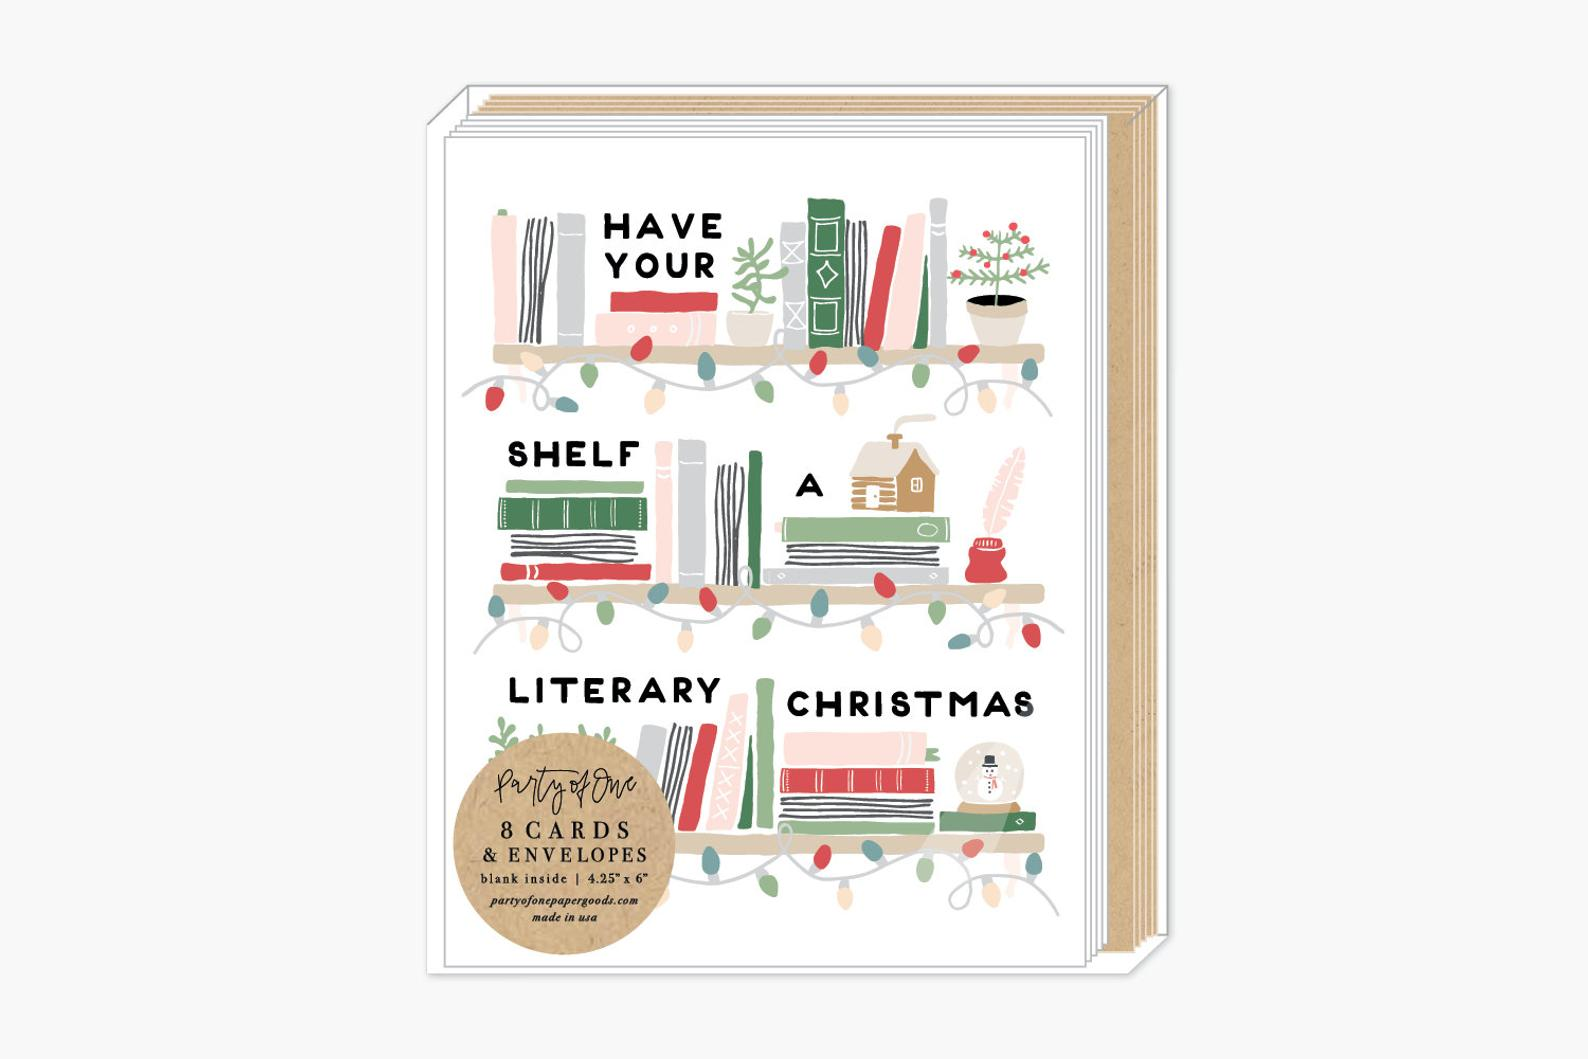 Have Your Shelf a Merry Little Christmas cards